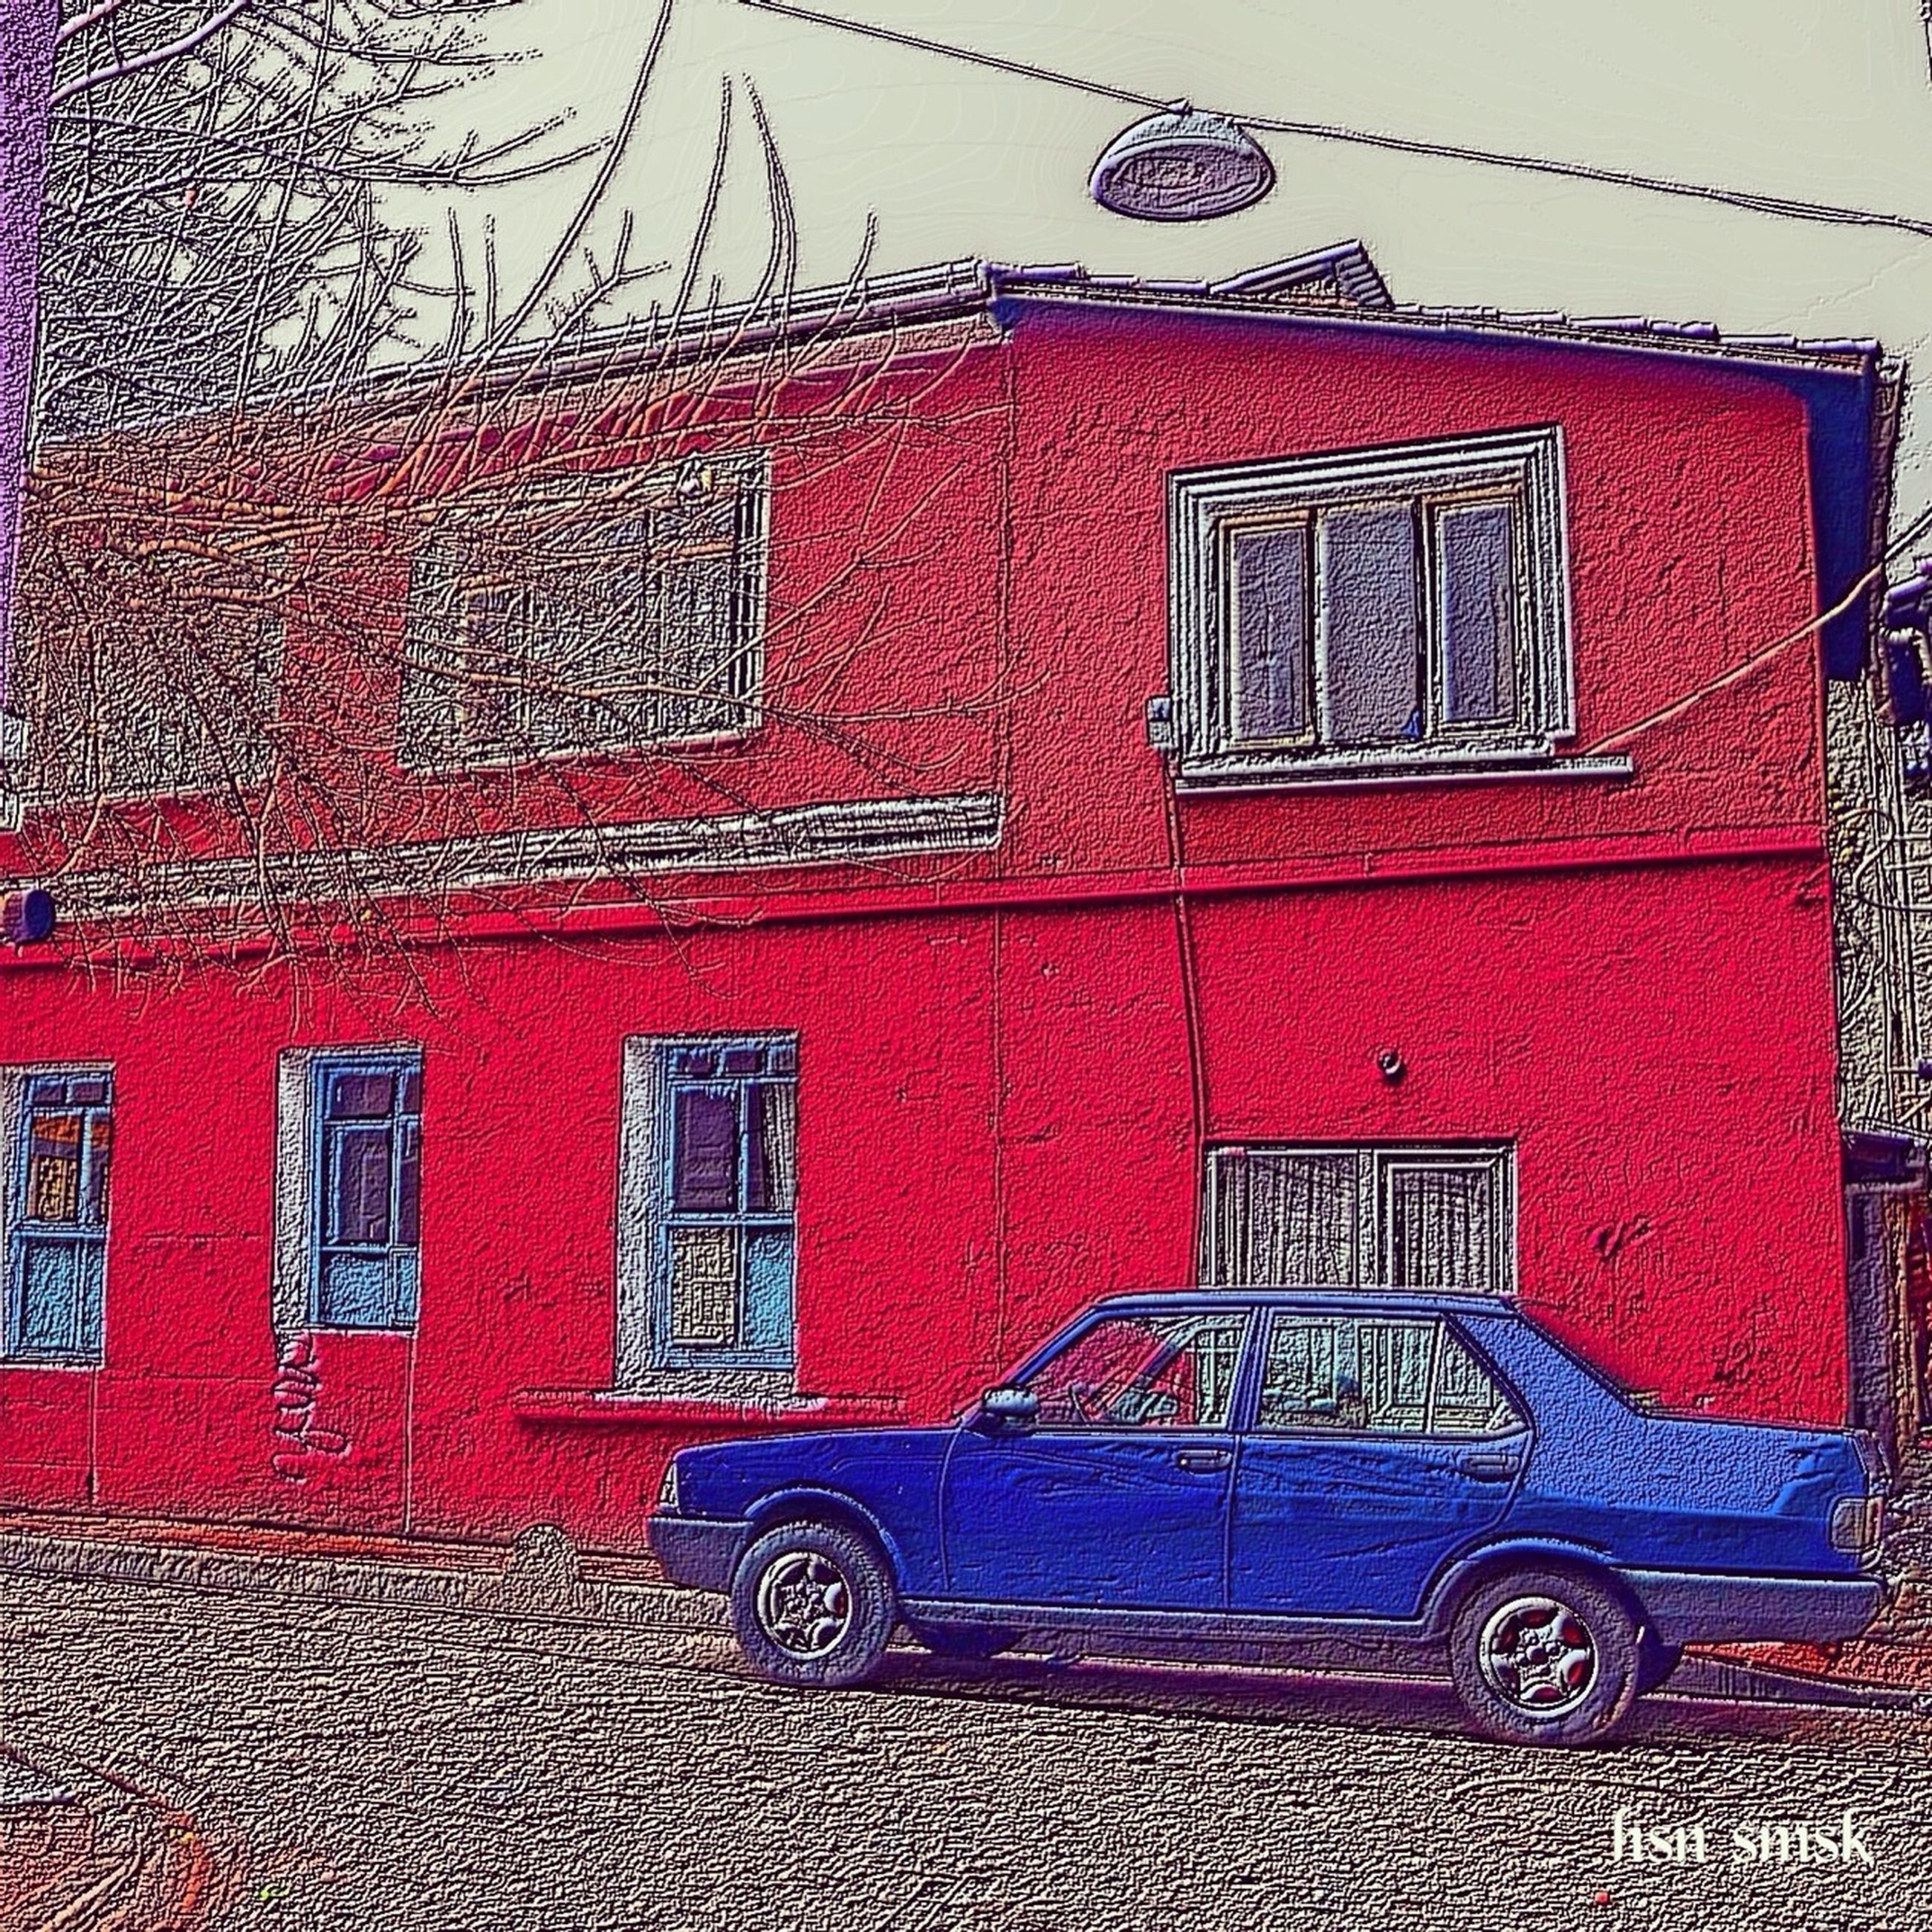 building exterior, architecture, red, built structure, window, house, brick wall, residential structure, wall - building feature, day, outdoors, residential building, no people, wall, building, cobblestone, closed, clear sky, door, facade